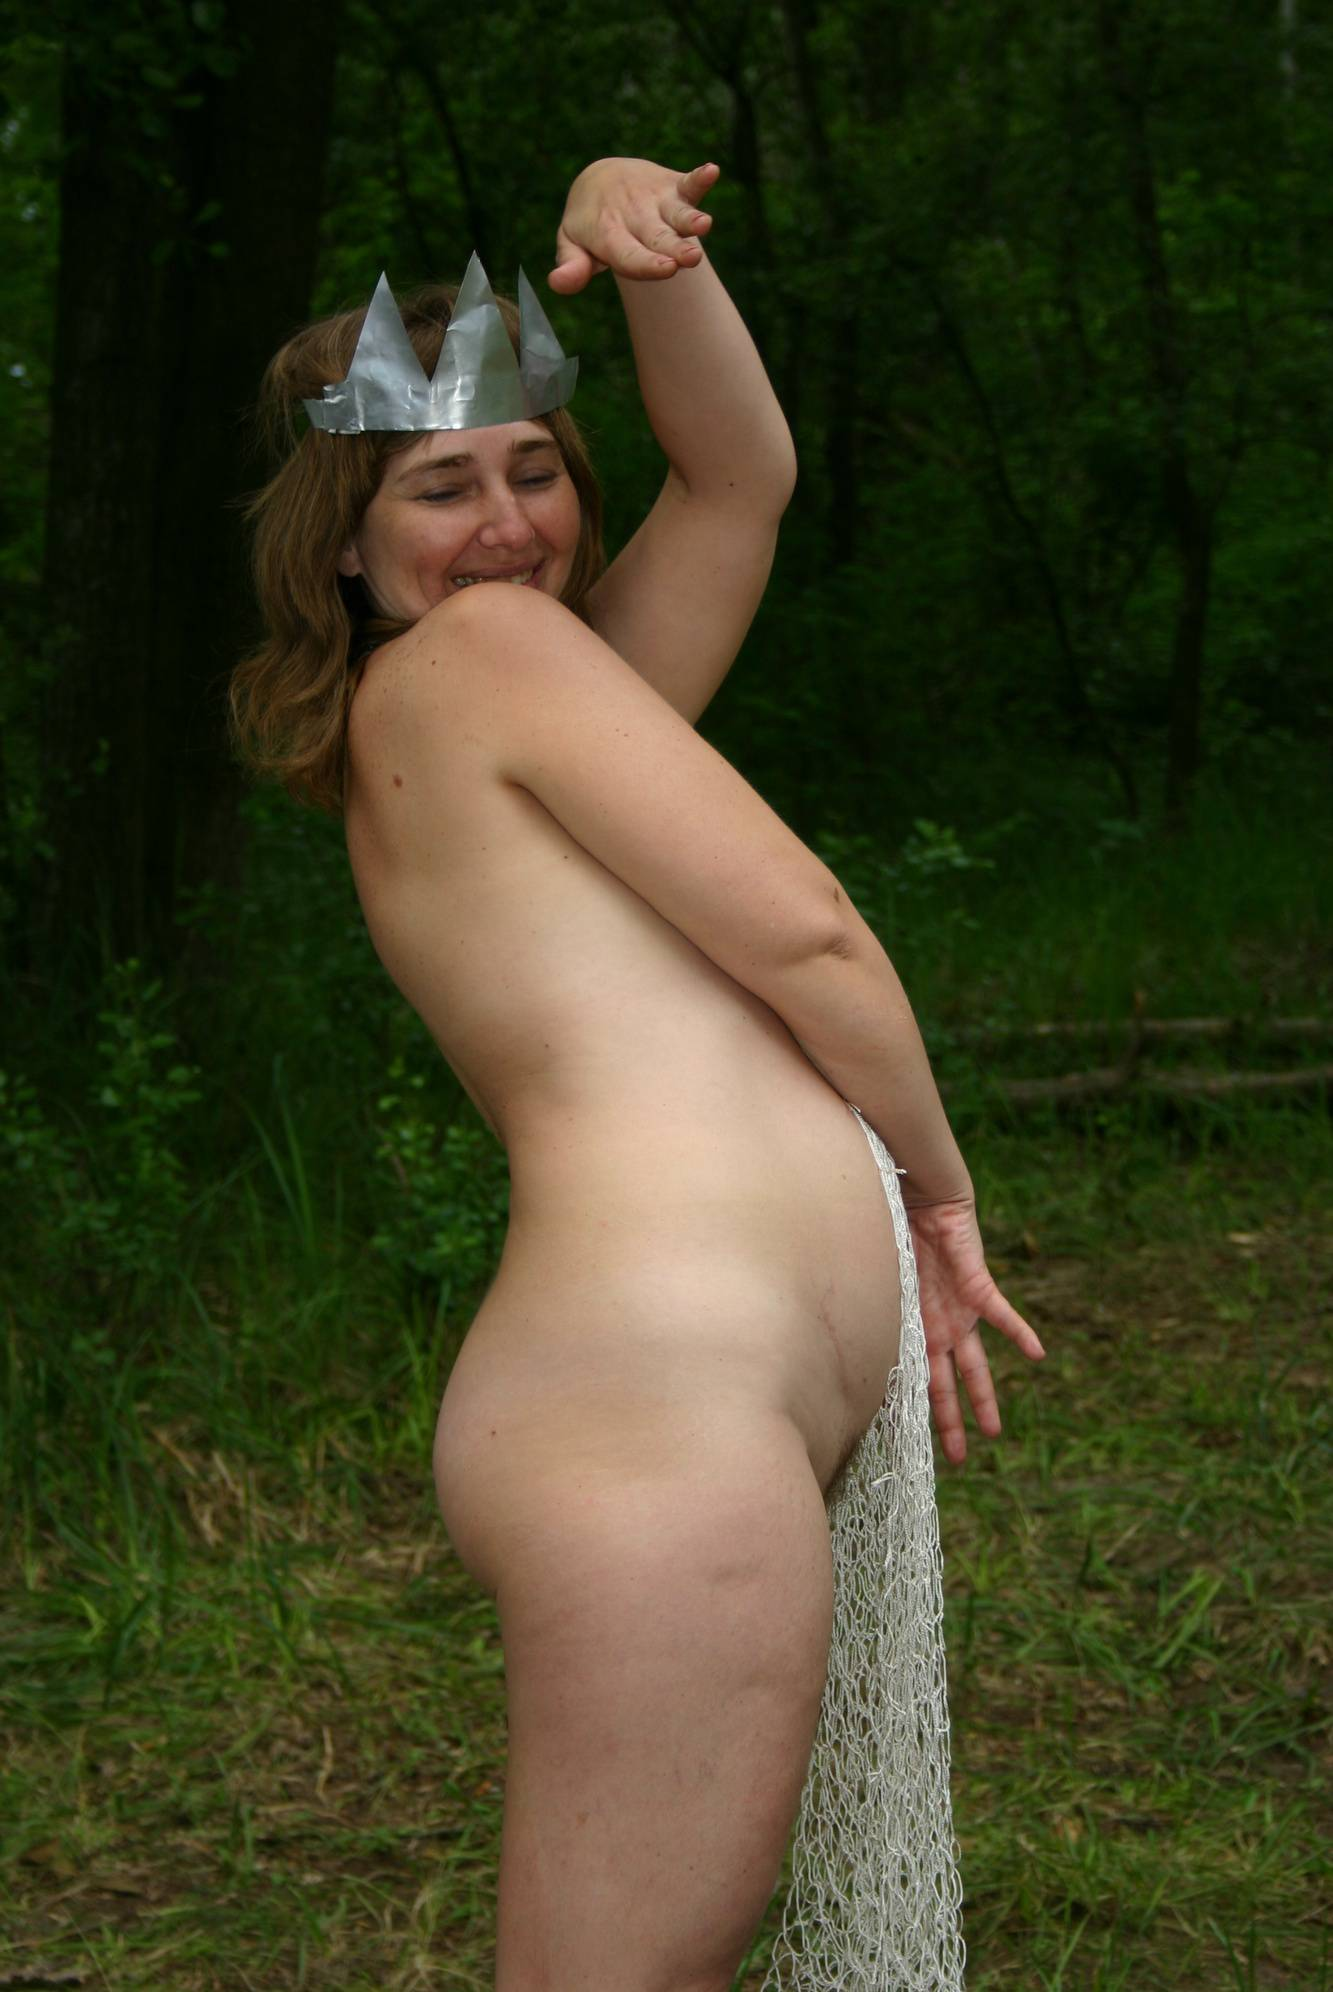 Purenudism Images-Dare to Be Bare Nets - 3